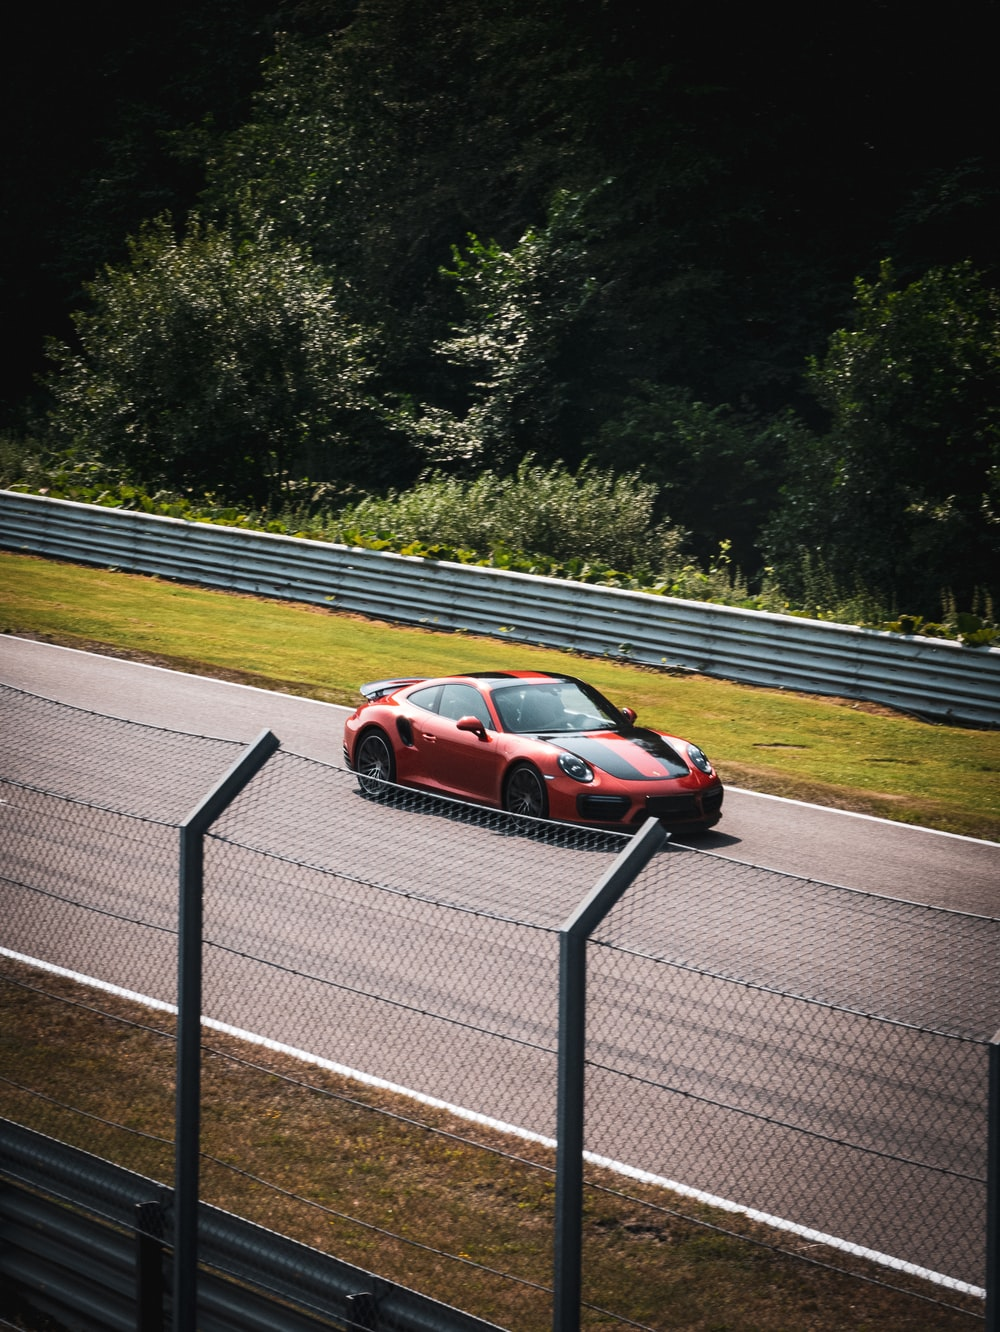 red and black sports car on road during daytime